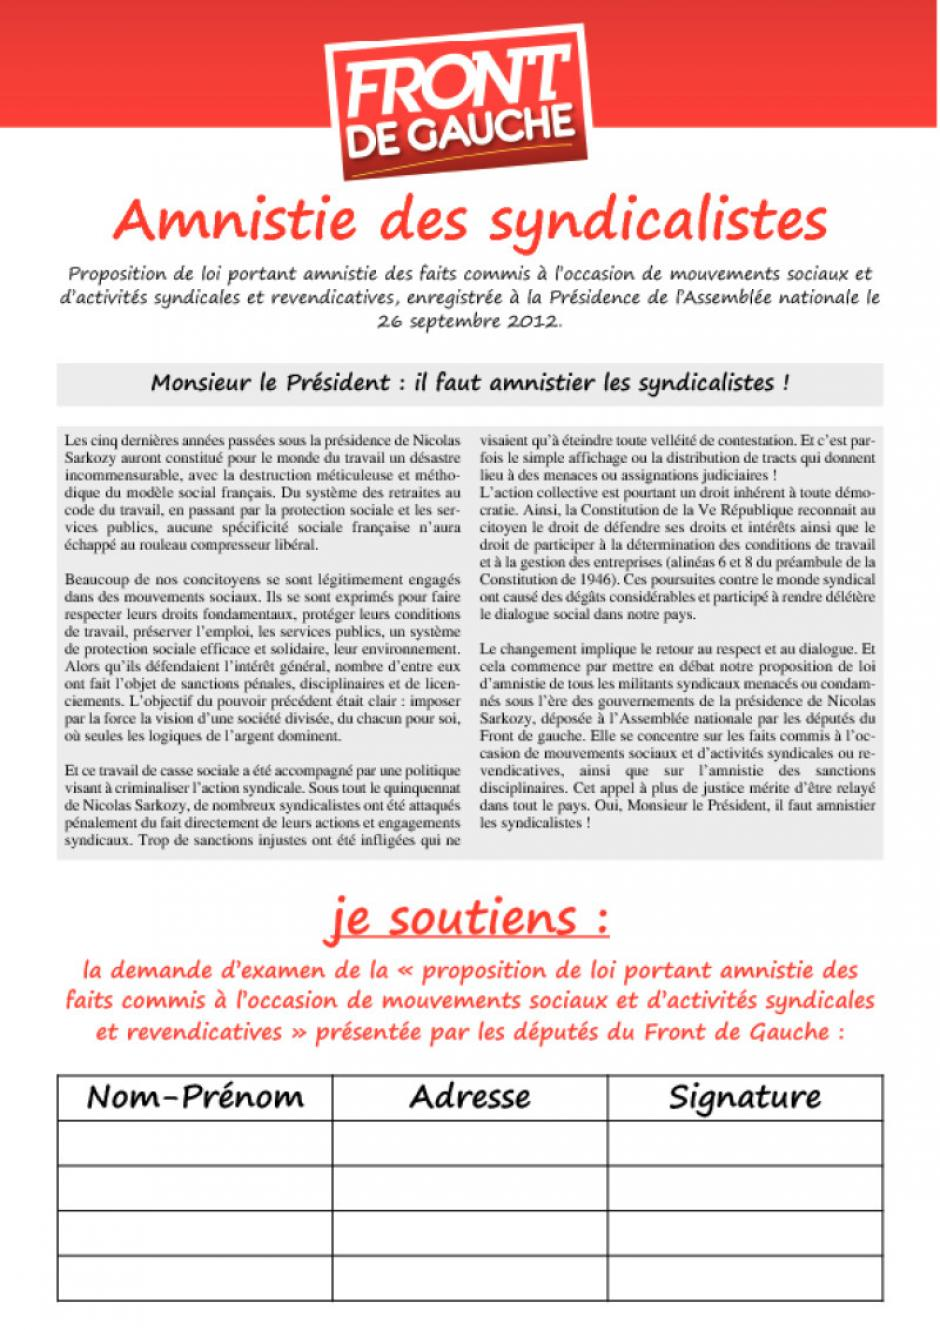 Monsieur le Prsident : il faut amnistier les syndicalistes !